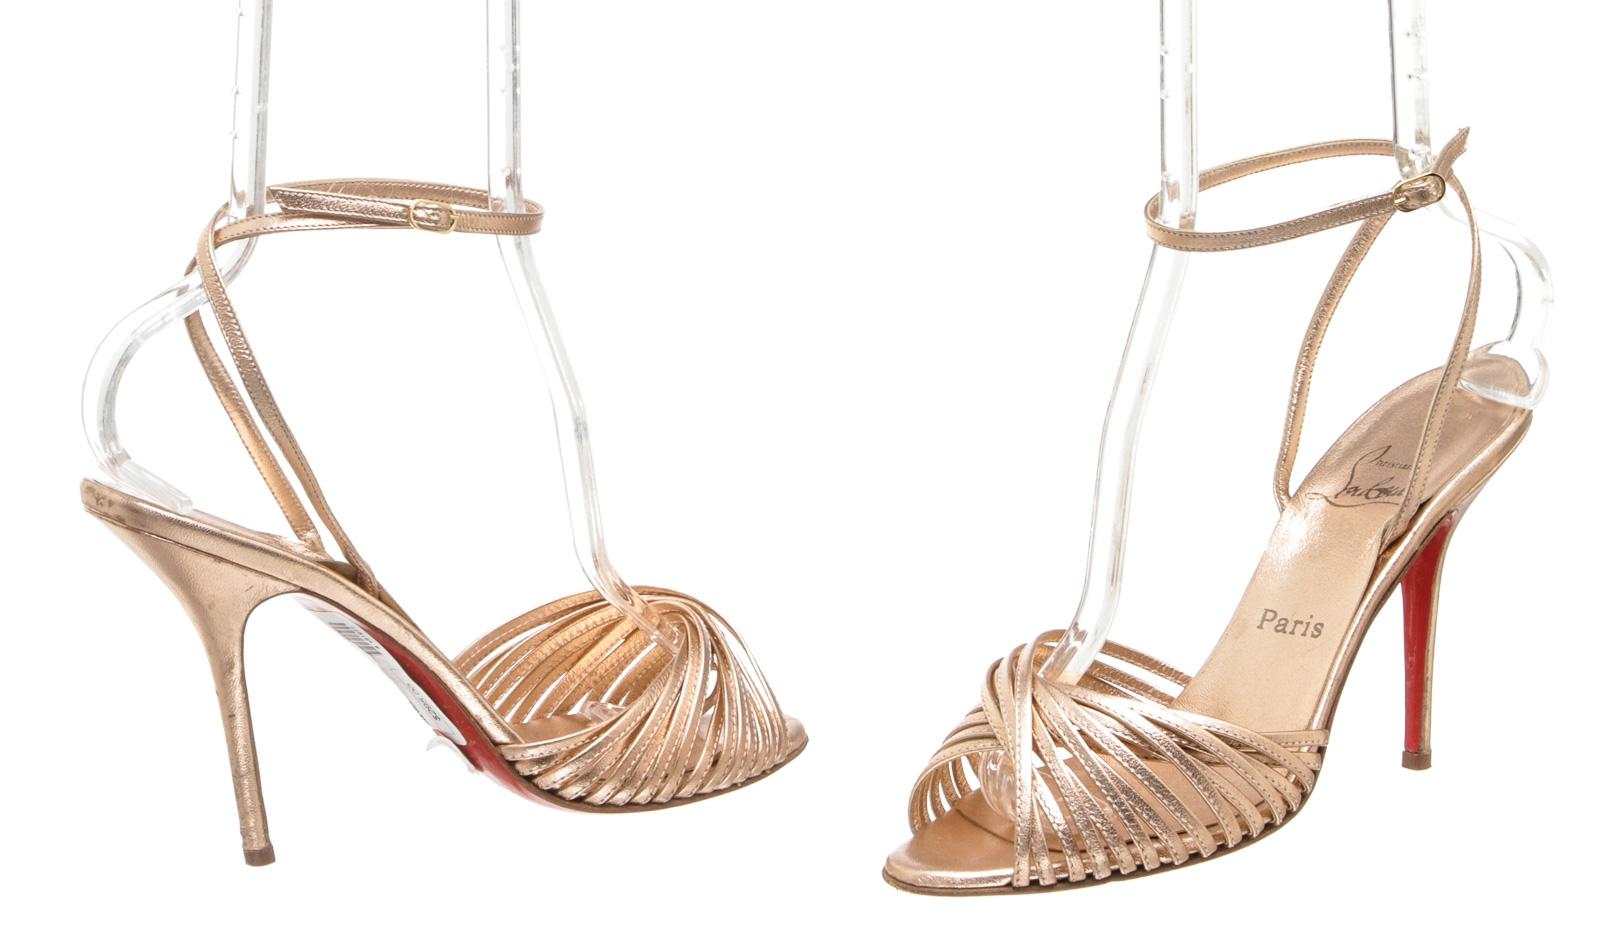 d899f0b593e6 ... wholesale christian louboutin rose gold sandals 194d7 e3b55 ...